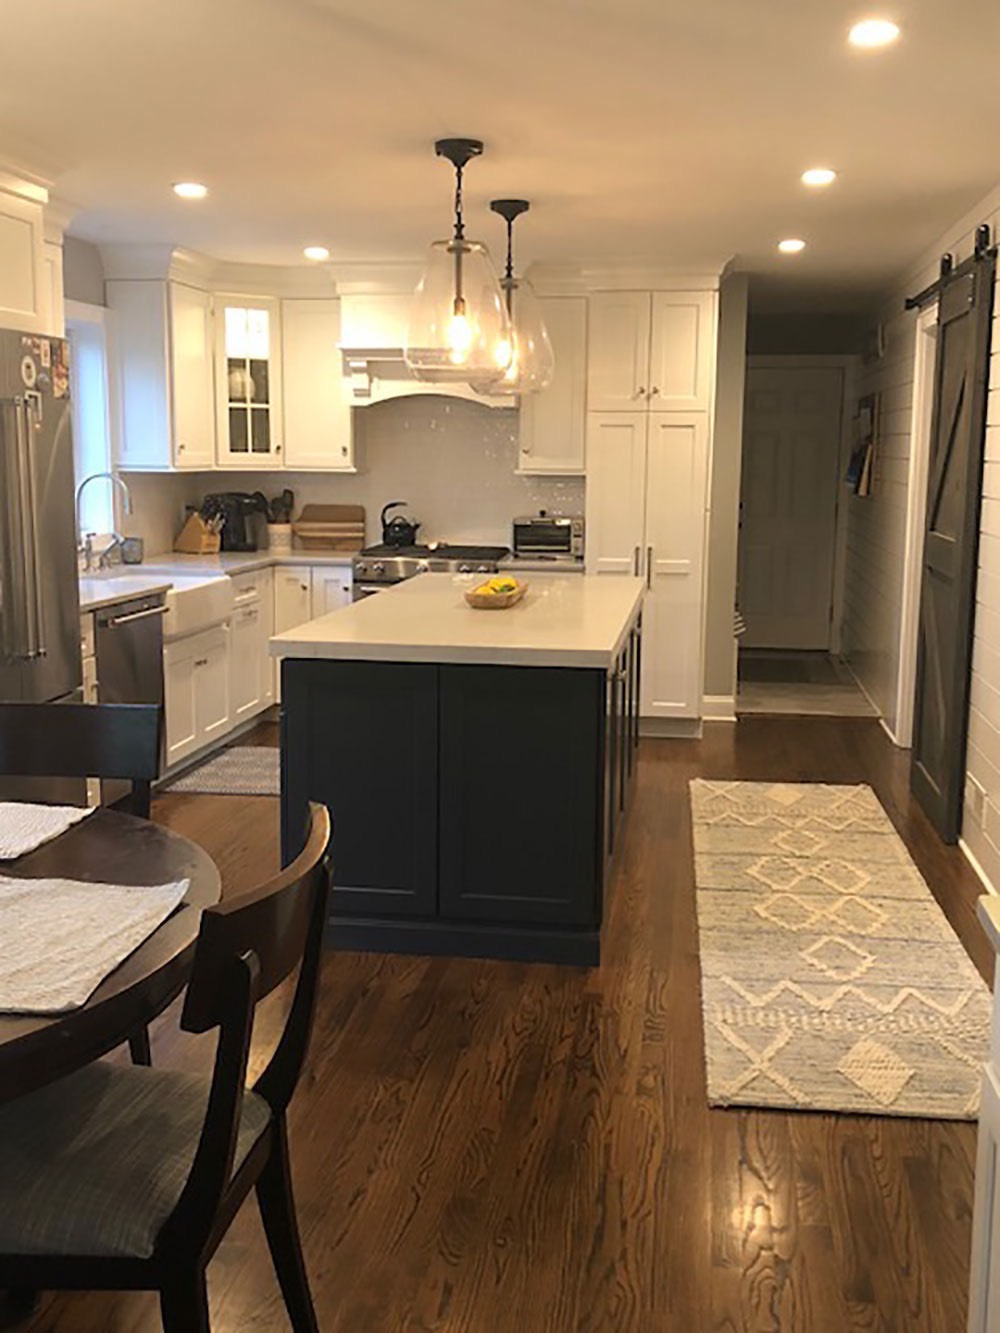 Kitchen Counter in Middle with Rug